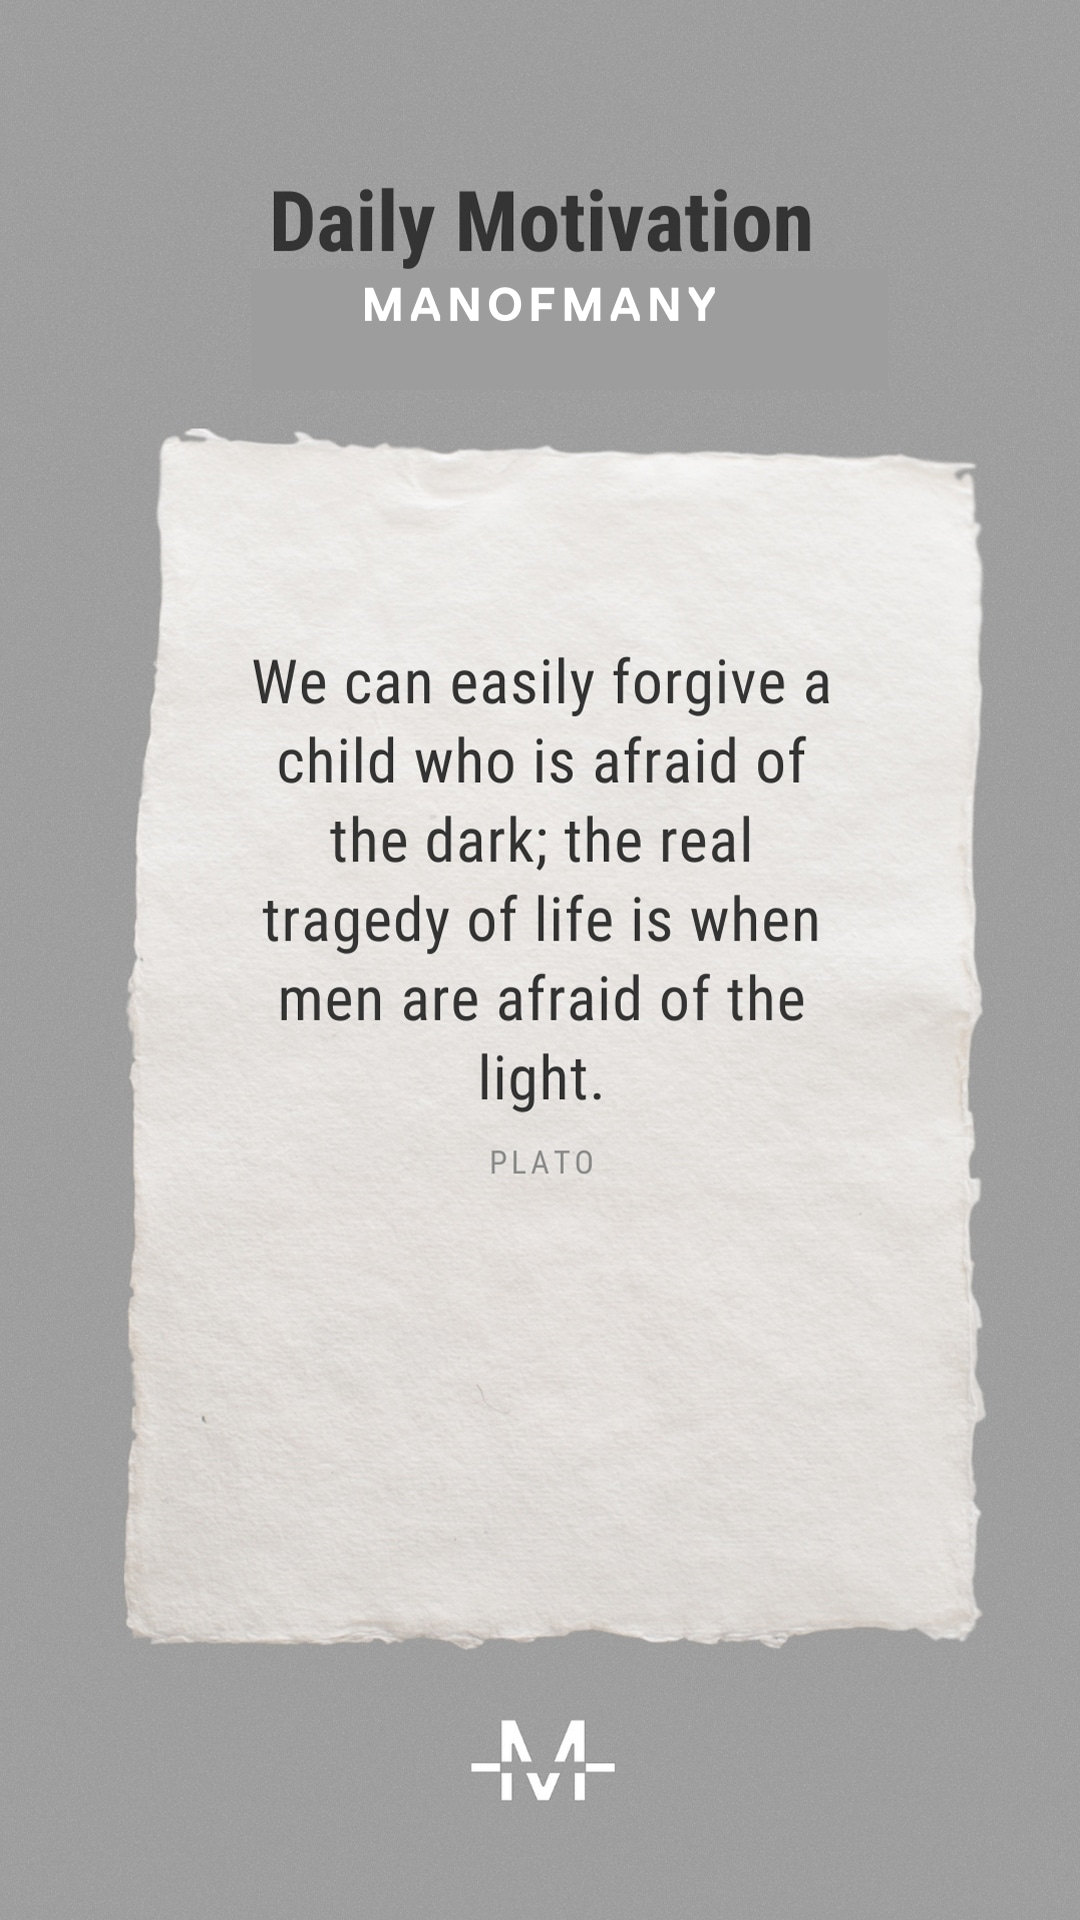 We can easily forgive a child who is afraid of the dark; the real tragedy of life is when men are afraid of the light. –Plato quote